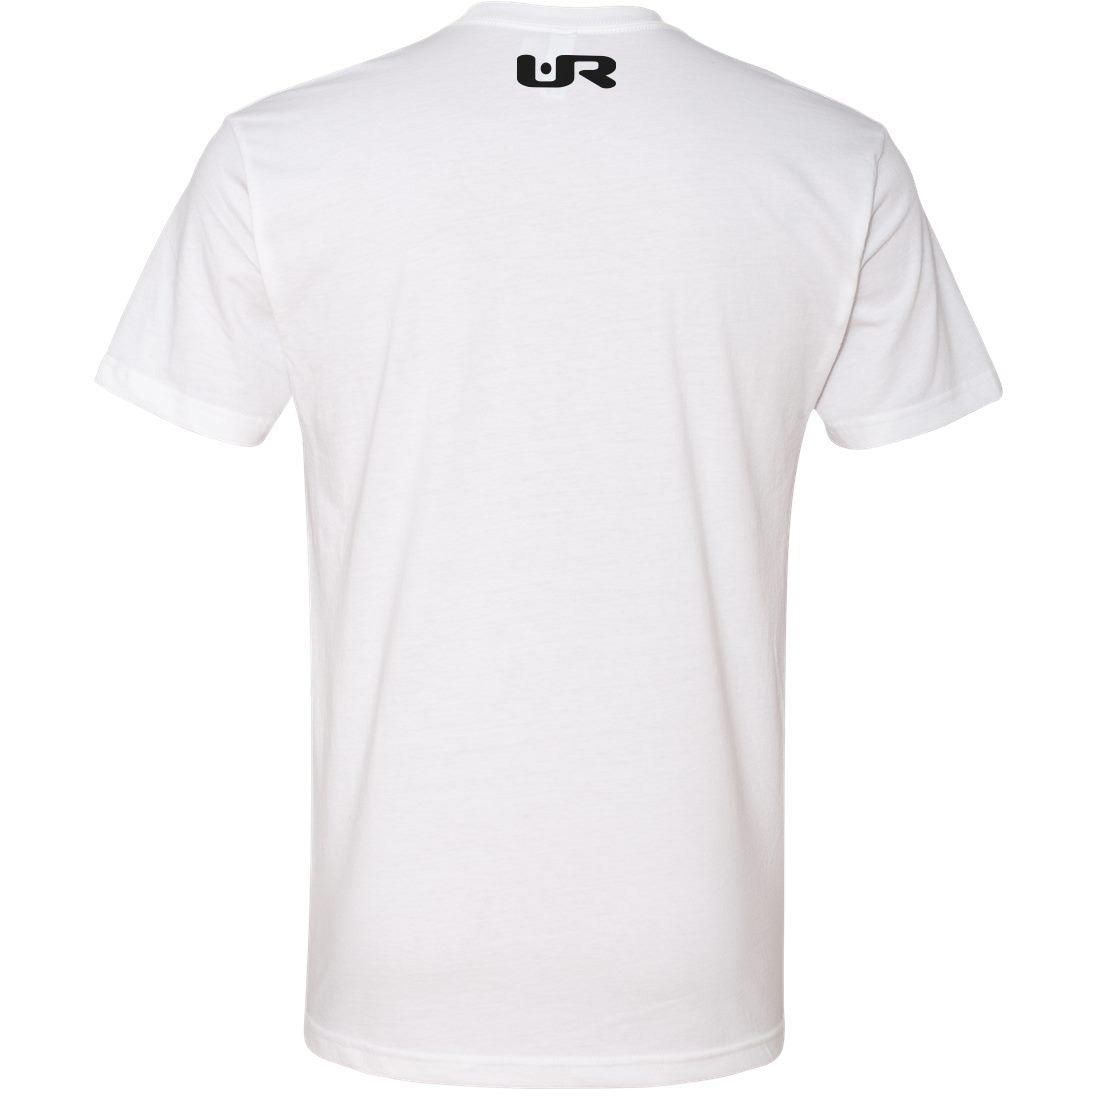 Iconic URNY Short Sleeve White T-Shirt